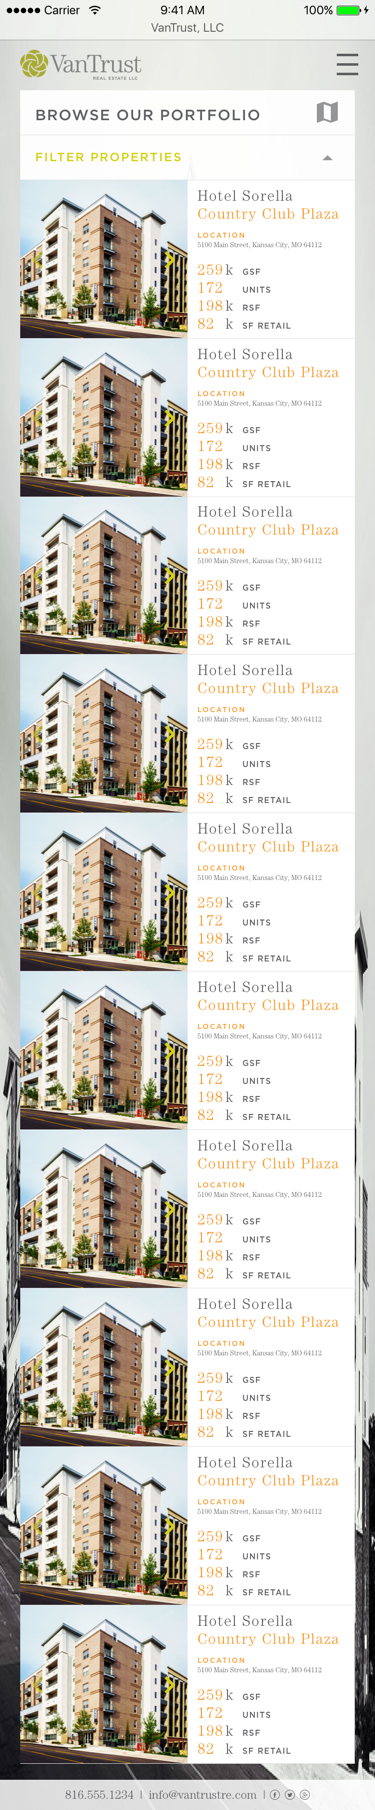 VanTrust Real Estate - Property Search, Grid View, Mobile